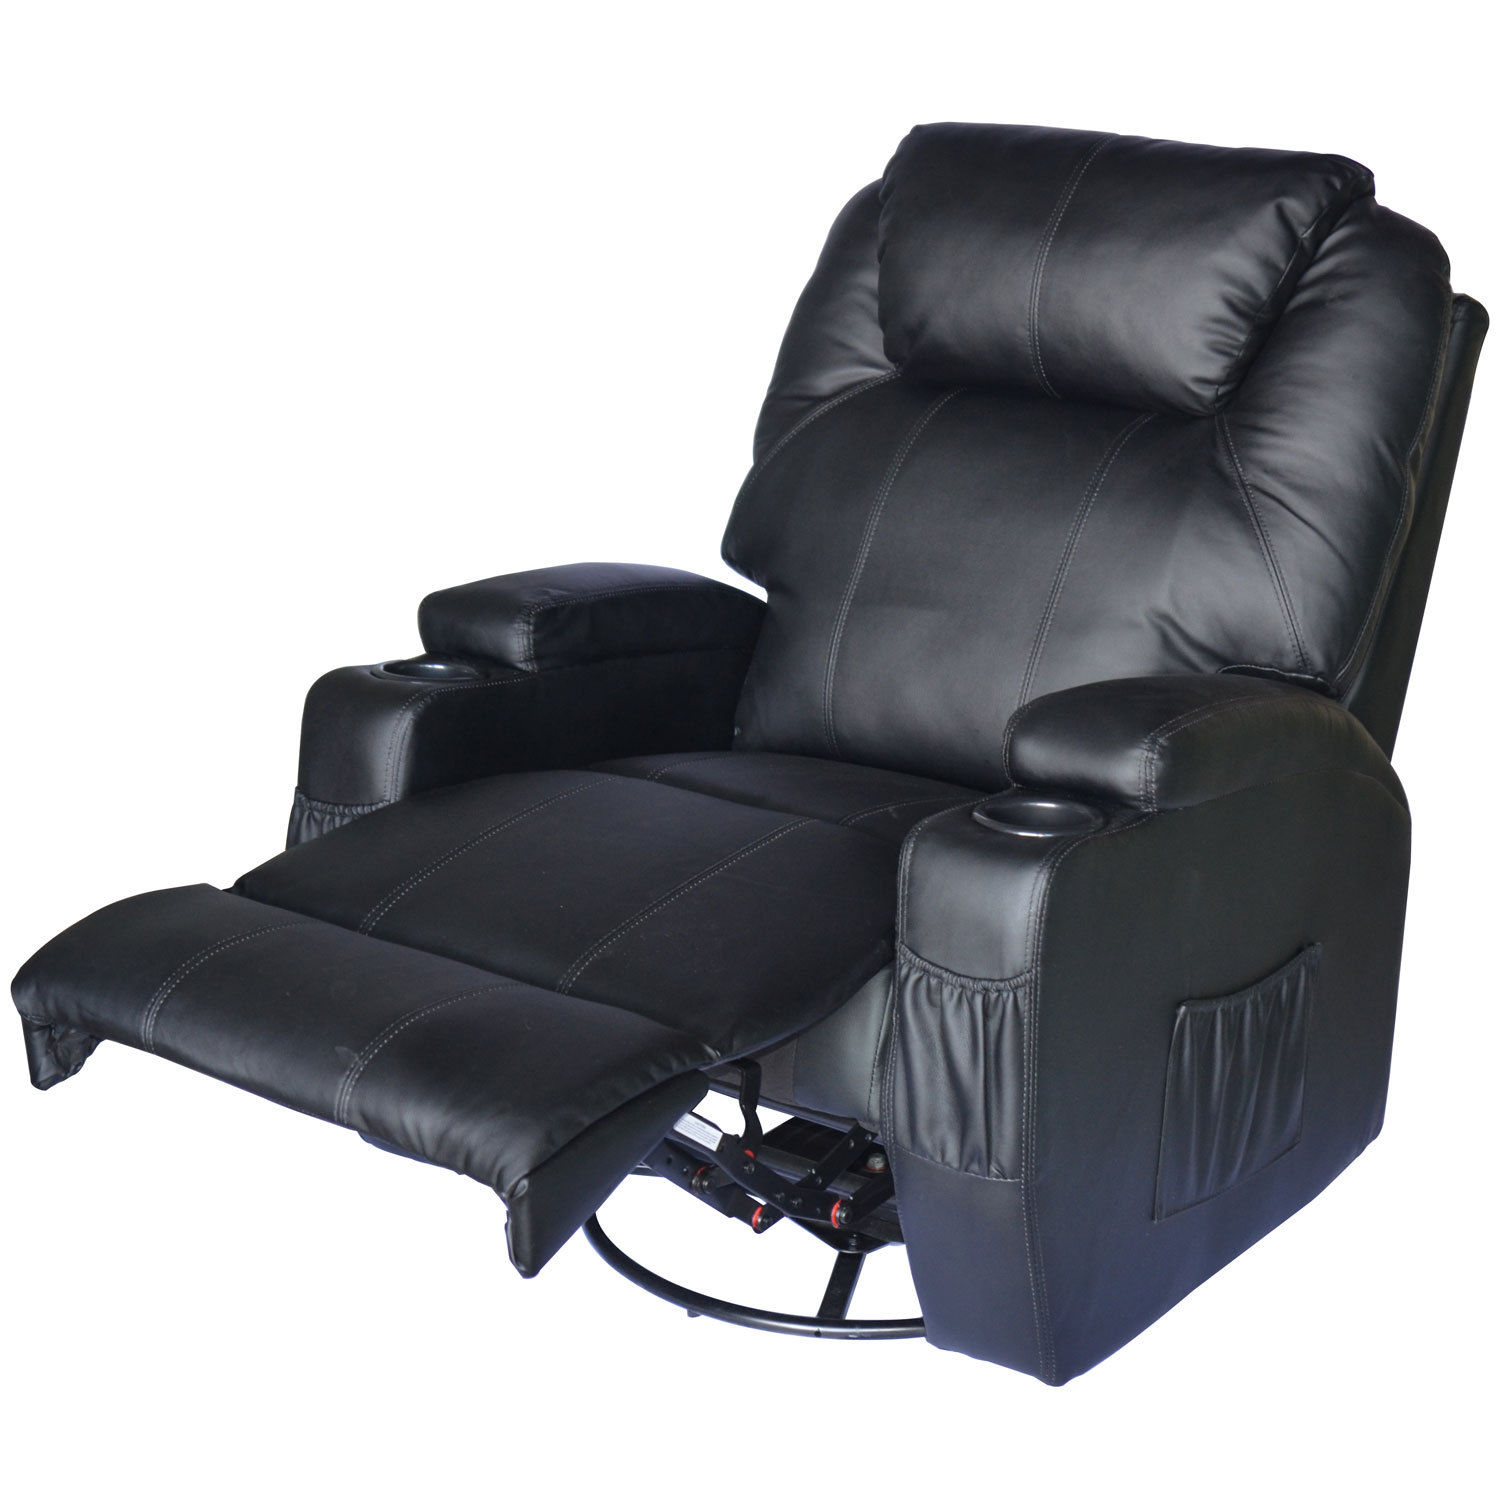 Sofa With Recliner Details About Massage Recliner Sofa Leather Vibrating Heated Chair Lounge Executive W Control